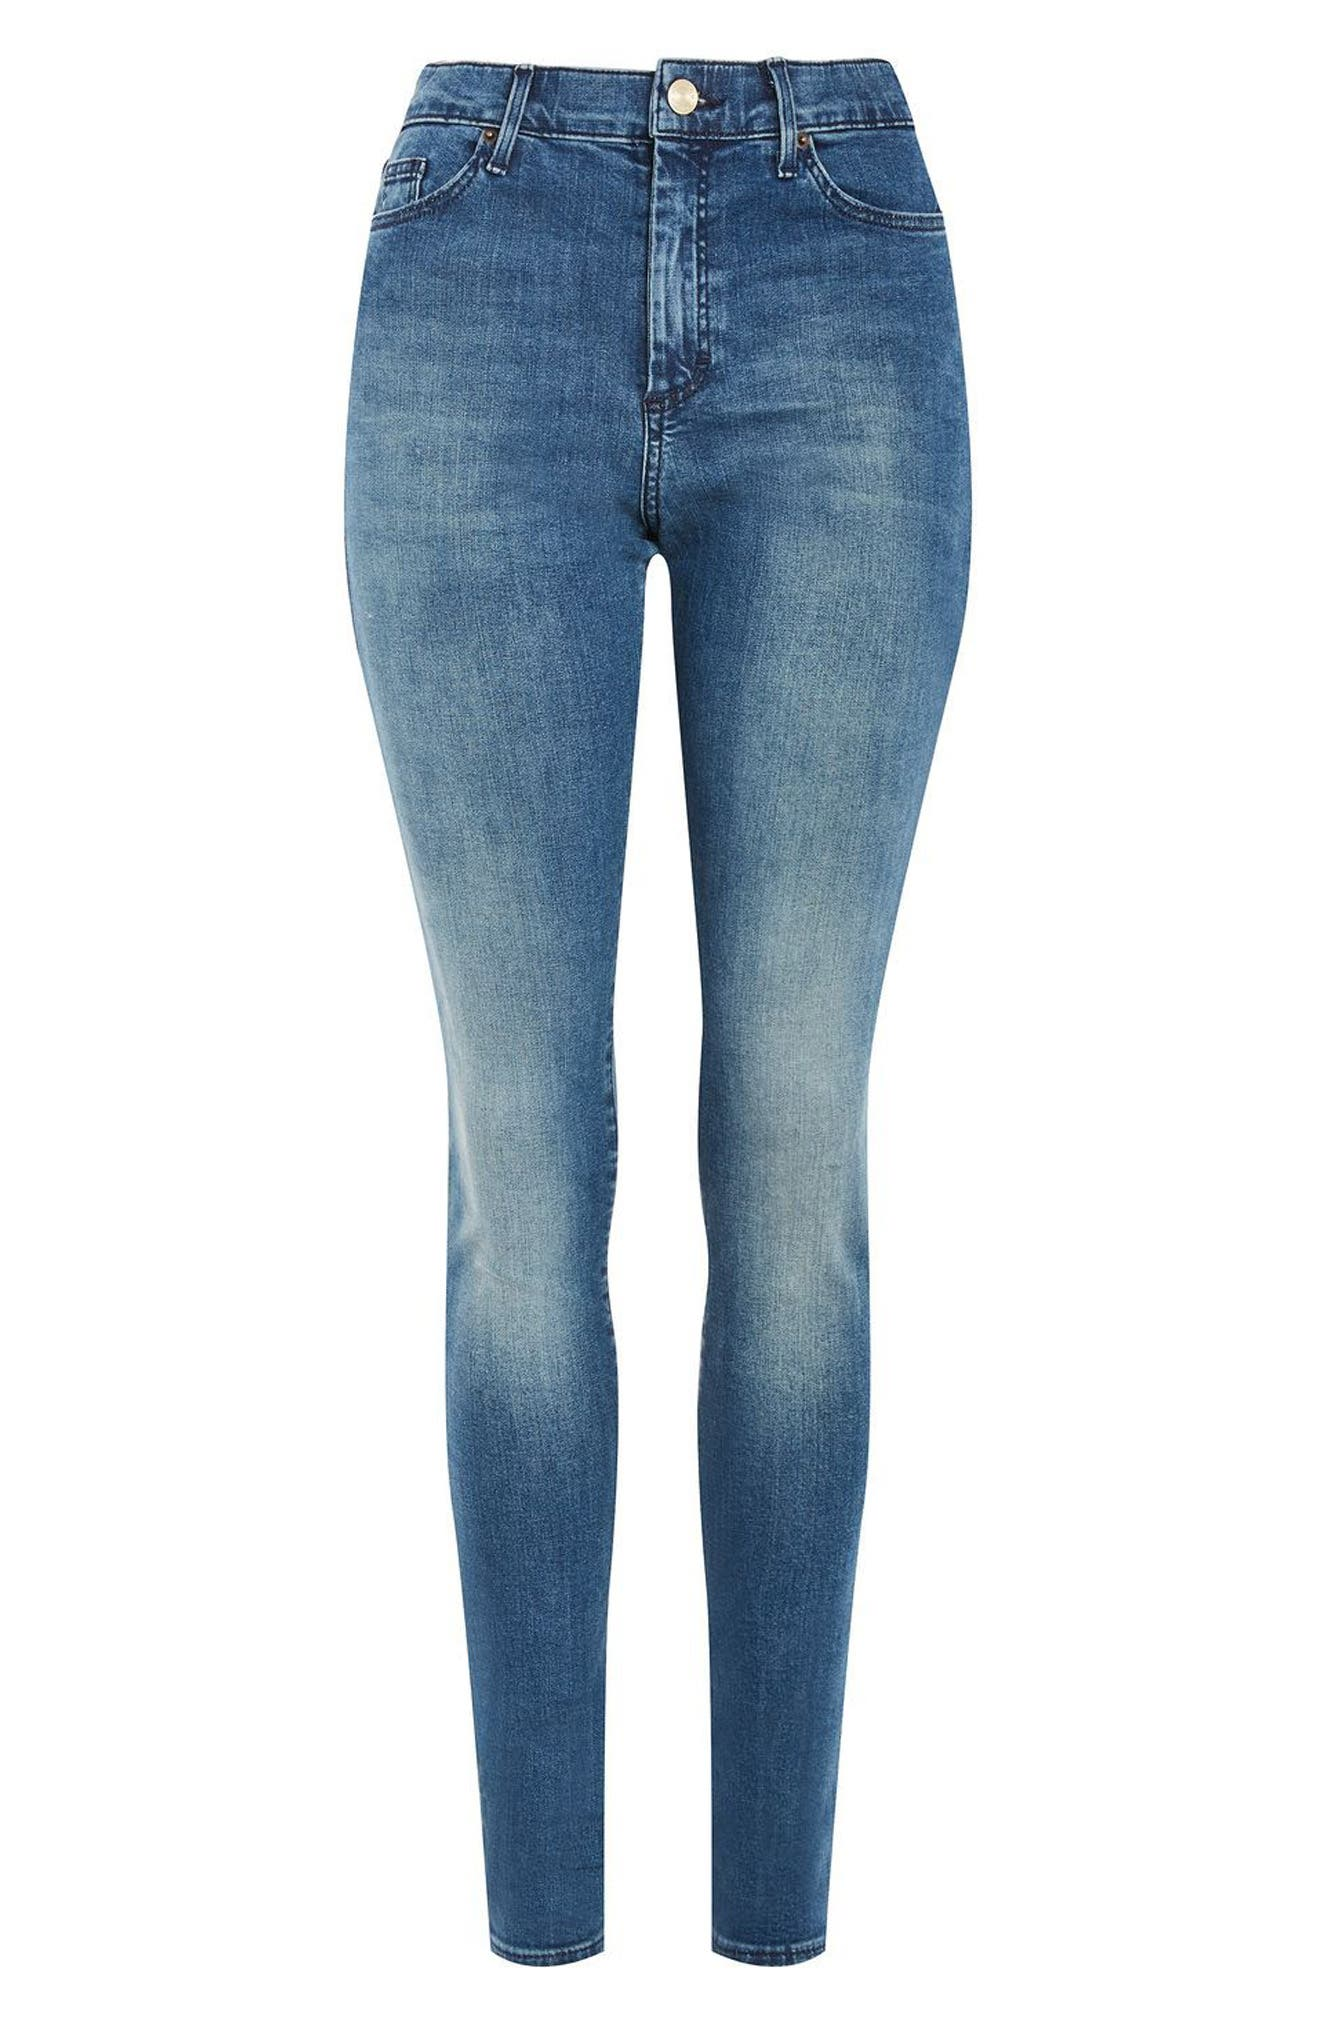 Leigh Skinny Jeans,                             Alternate thumbnail 4, color,                             400